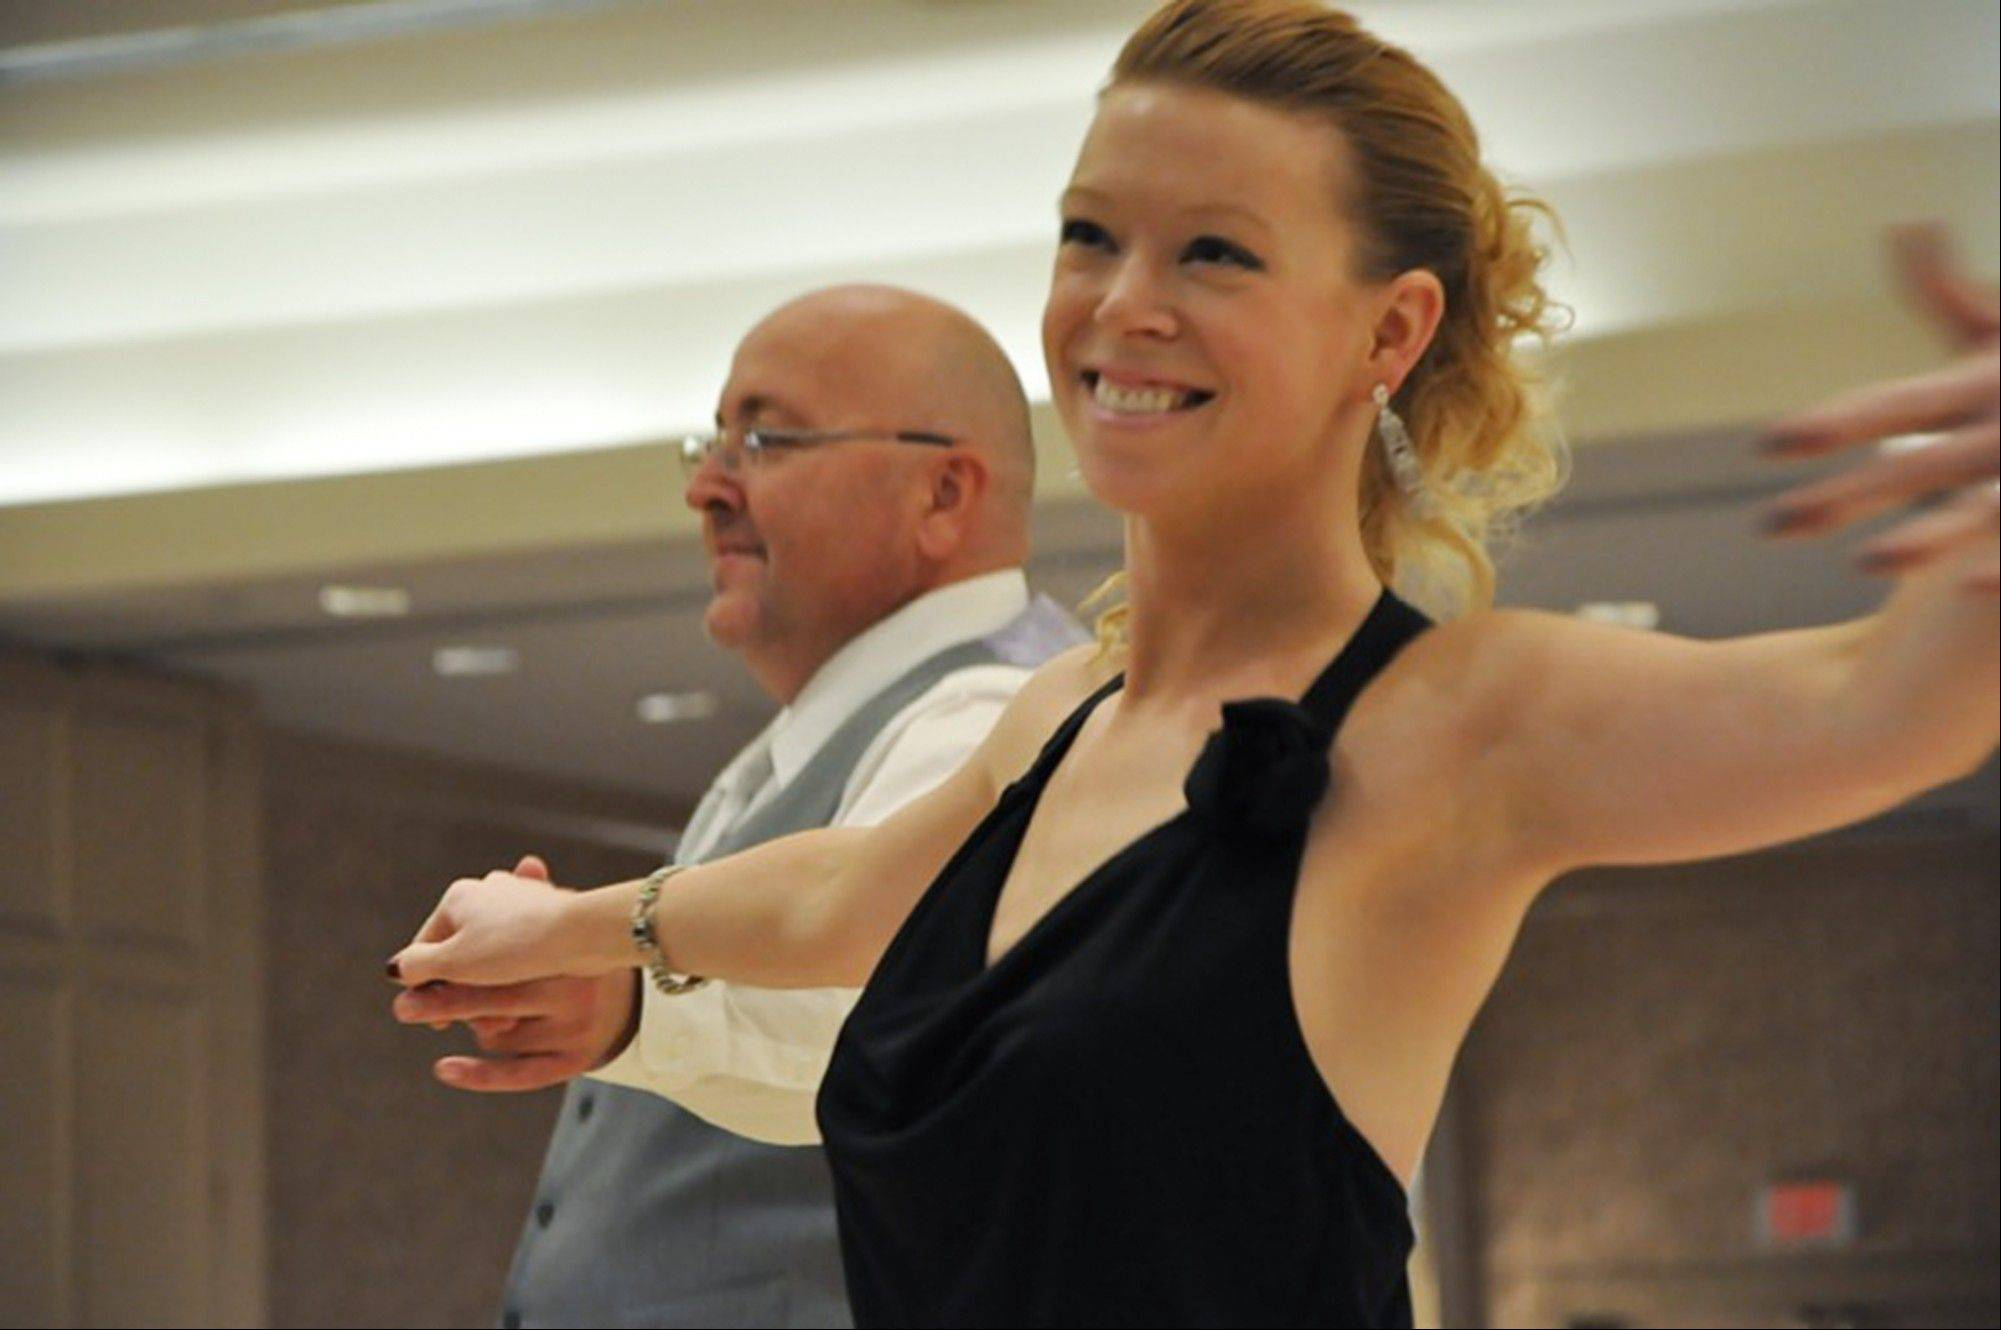 This 2012 photo provided by the Arthur Murray Boston Studio shows Adrianne Haslet during a dance competition in the Boston area. Haslet, a professional ballroom dancer injured by one of the bombs that exploded near the Boston Marathon finish line, on Monday, April 15, 2013, vows she will dance again.